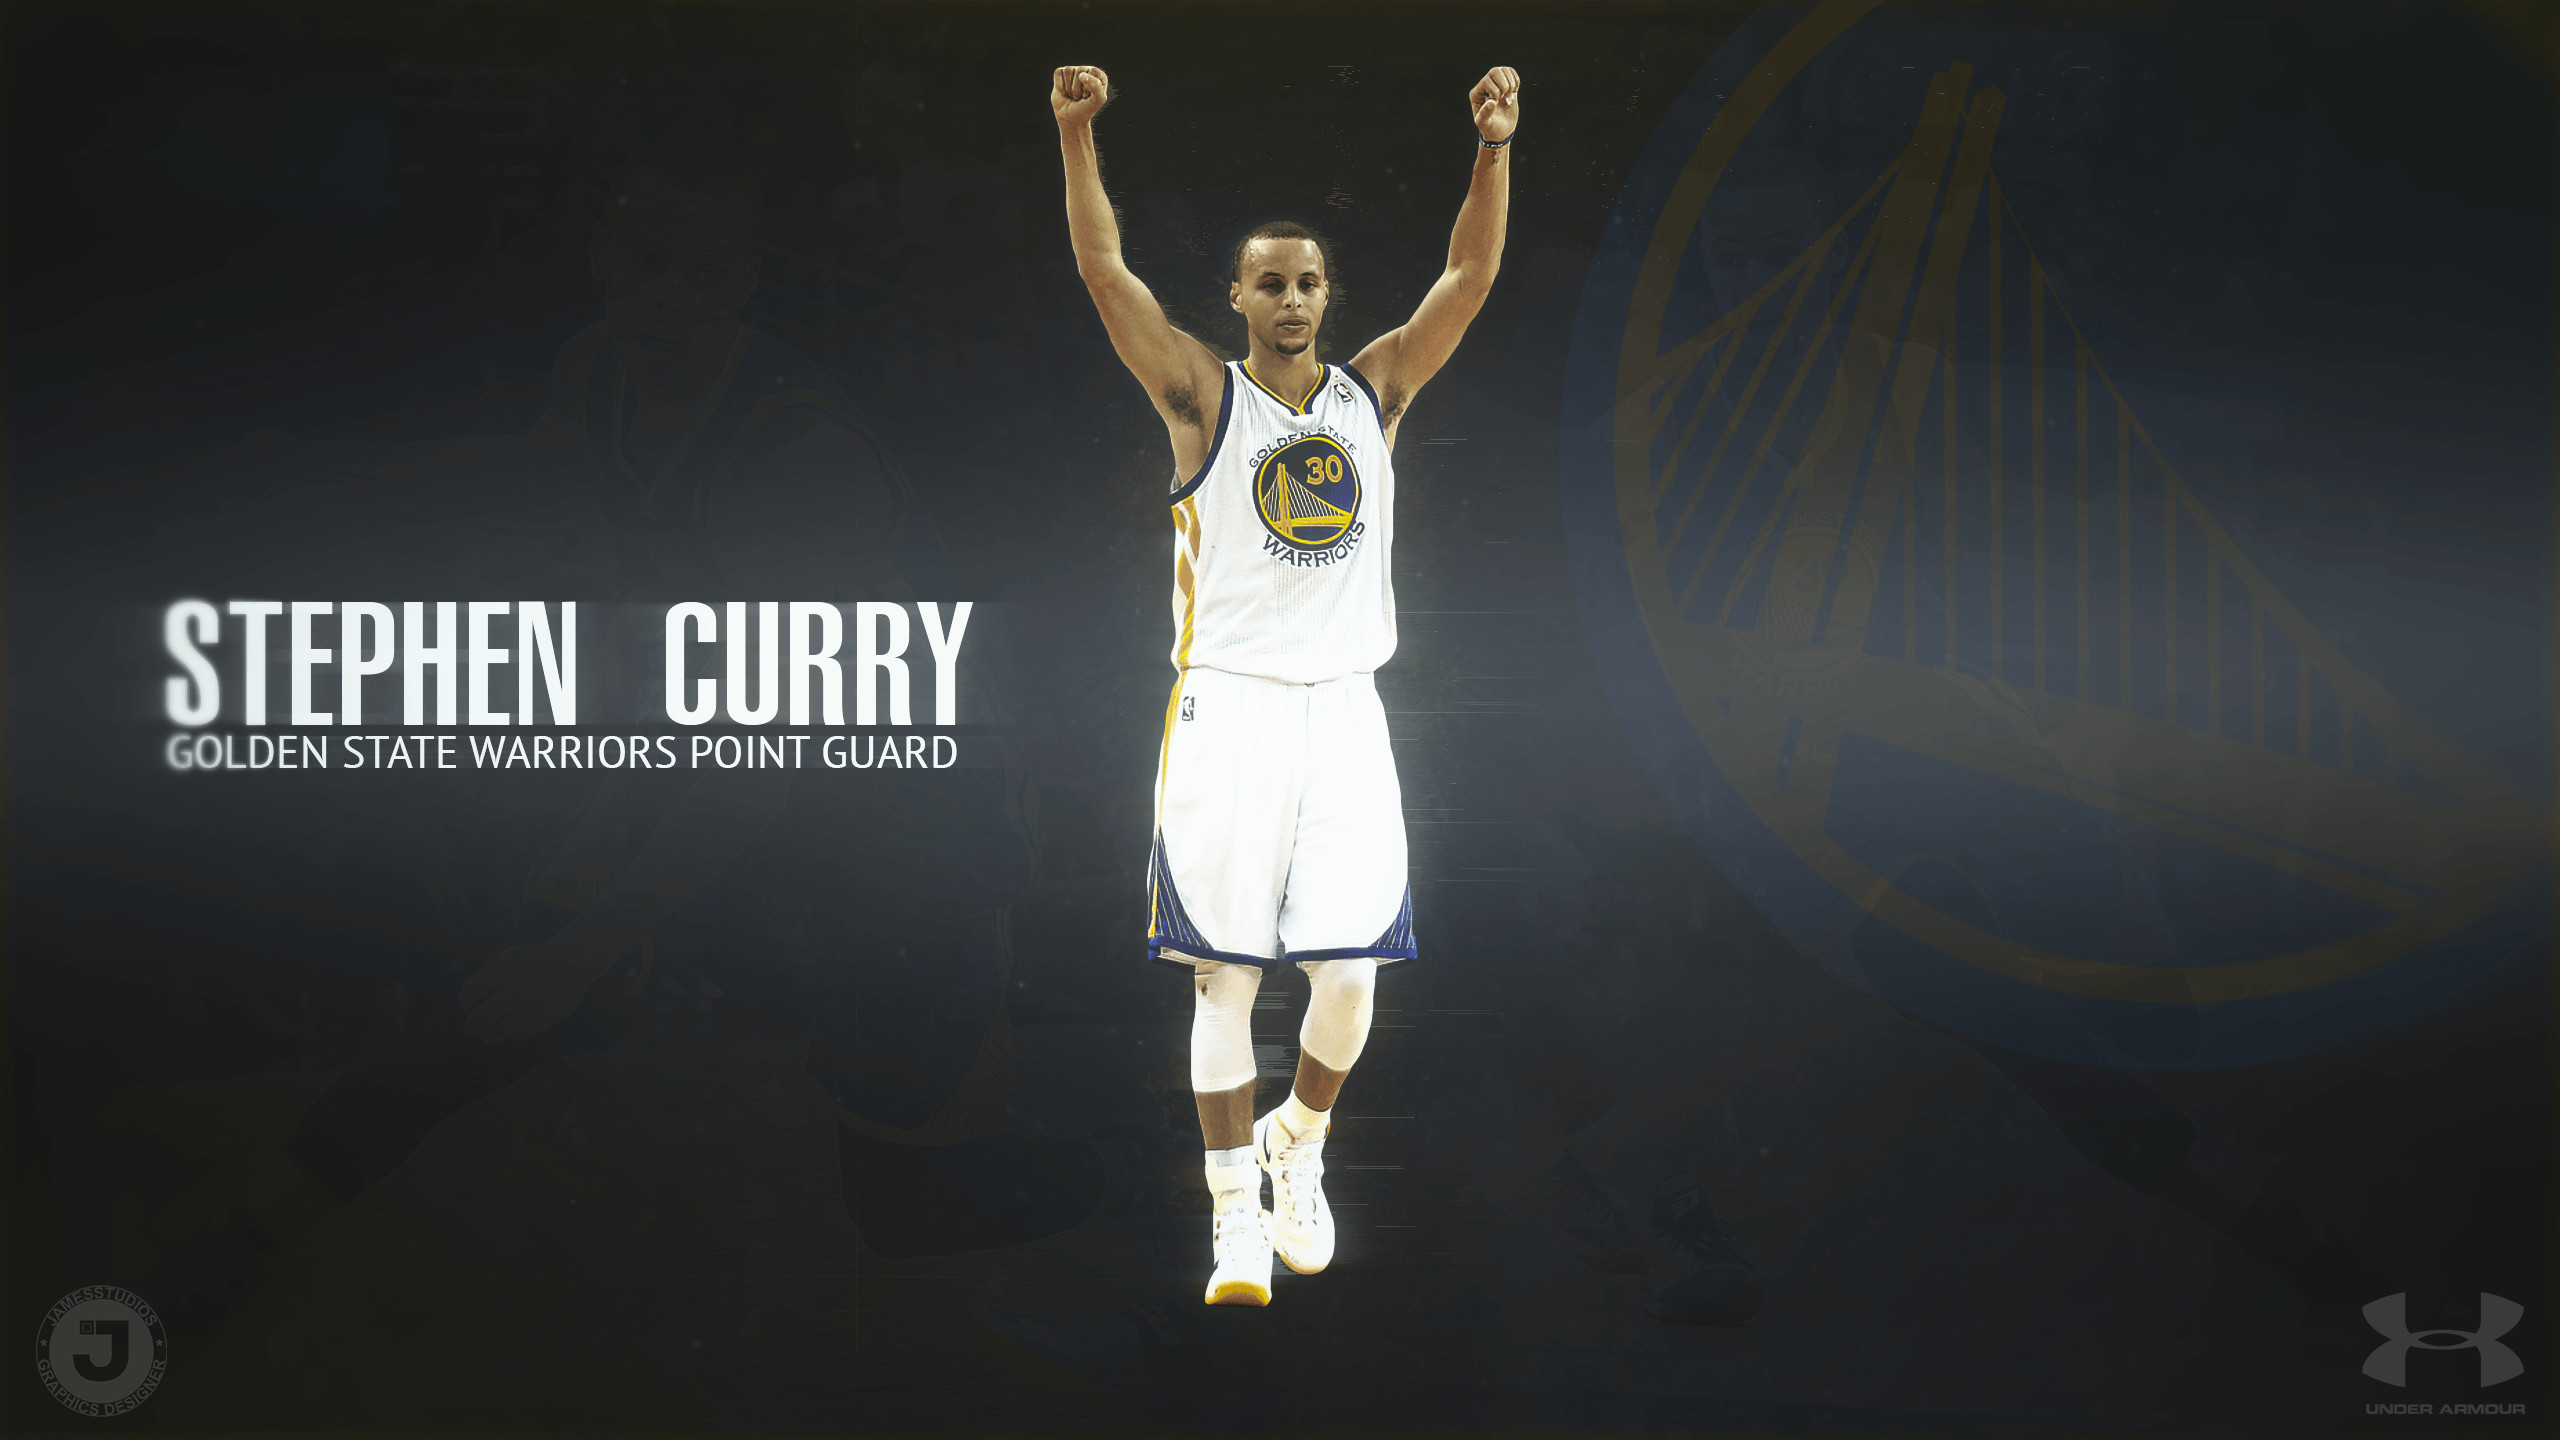 Wallpaper Under Steph Armour Curry